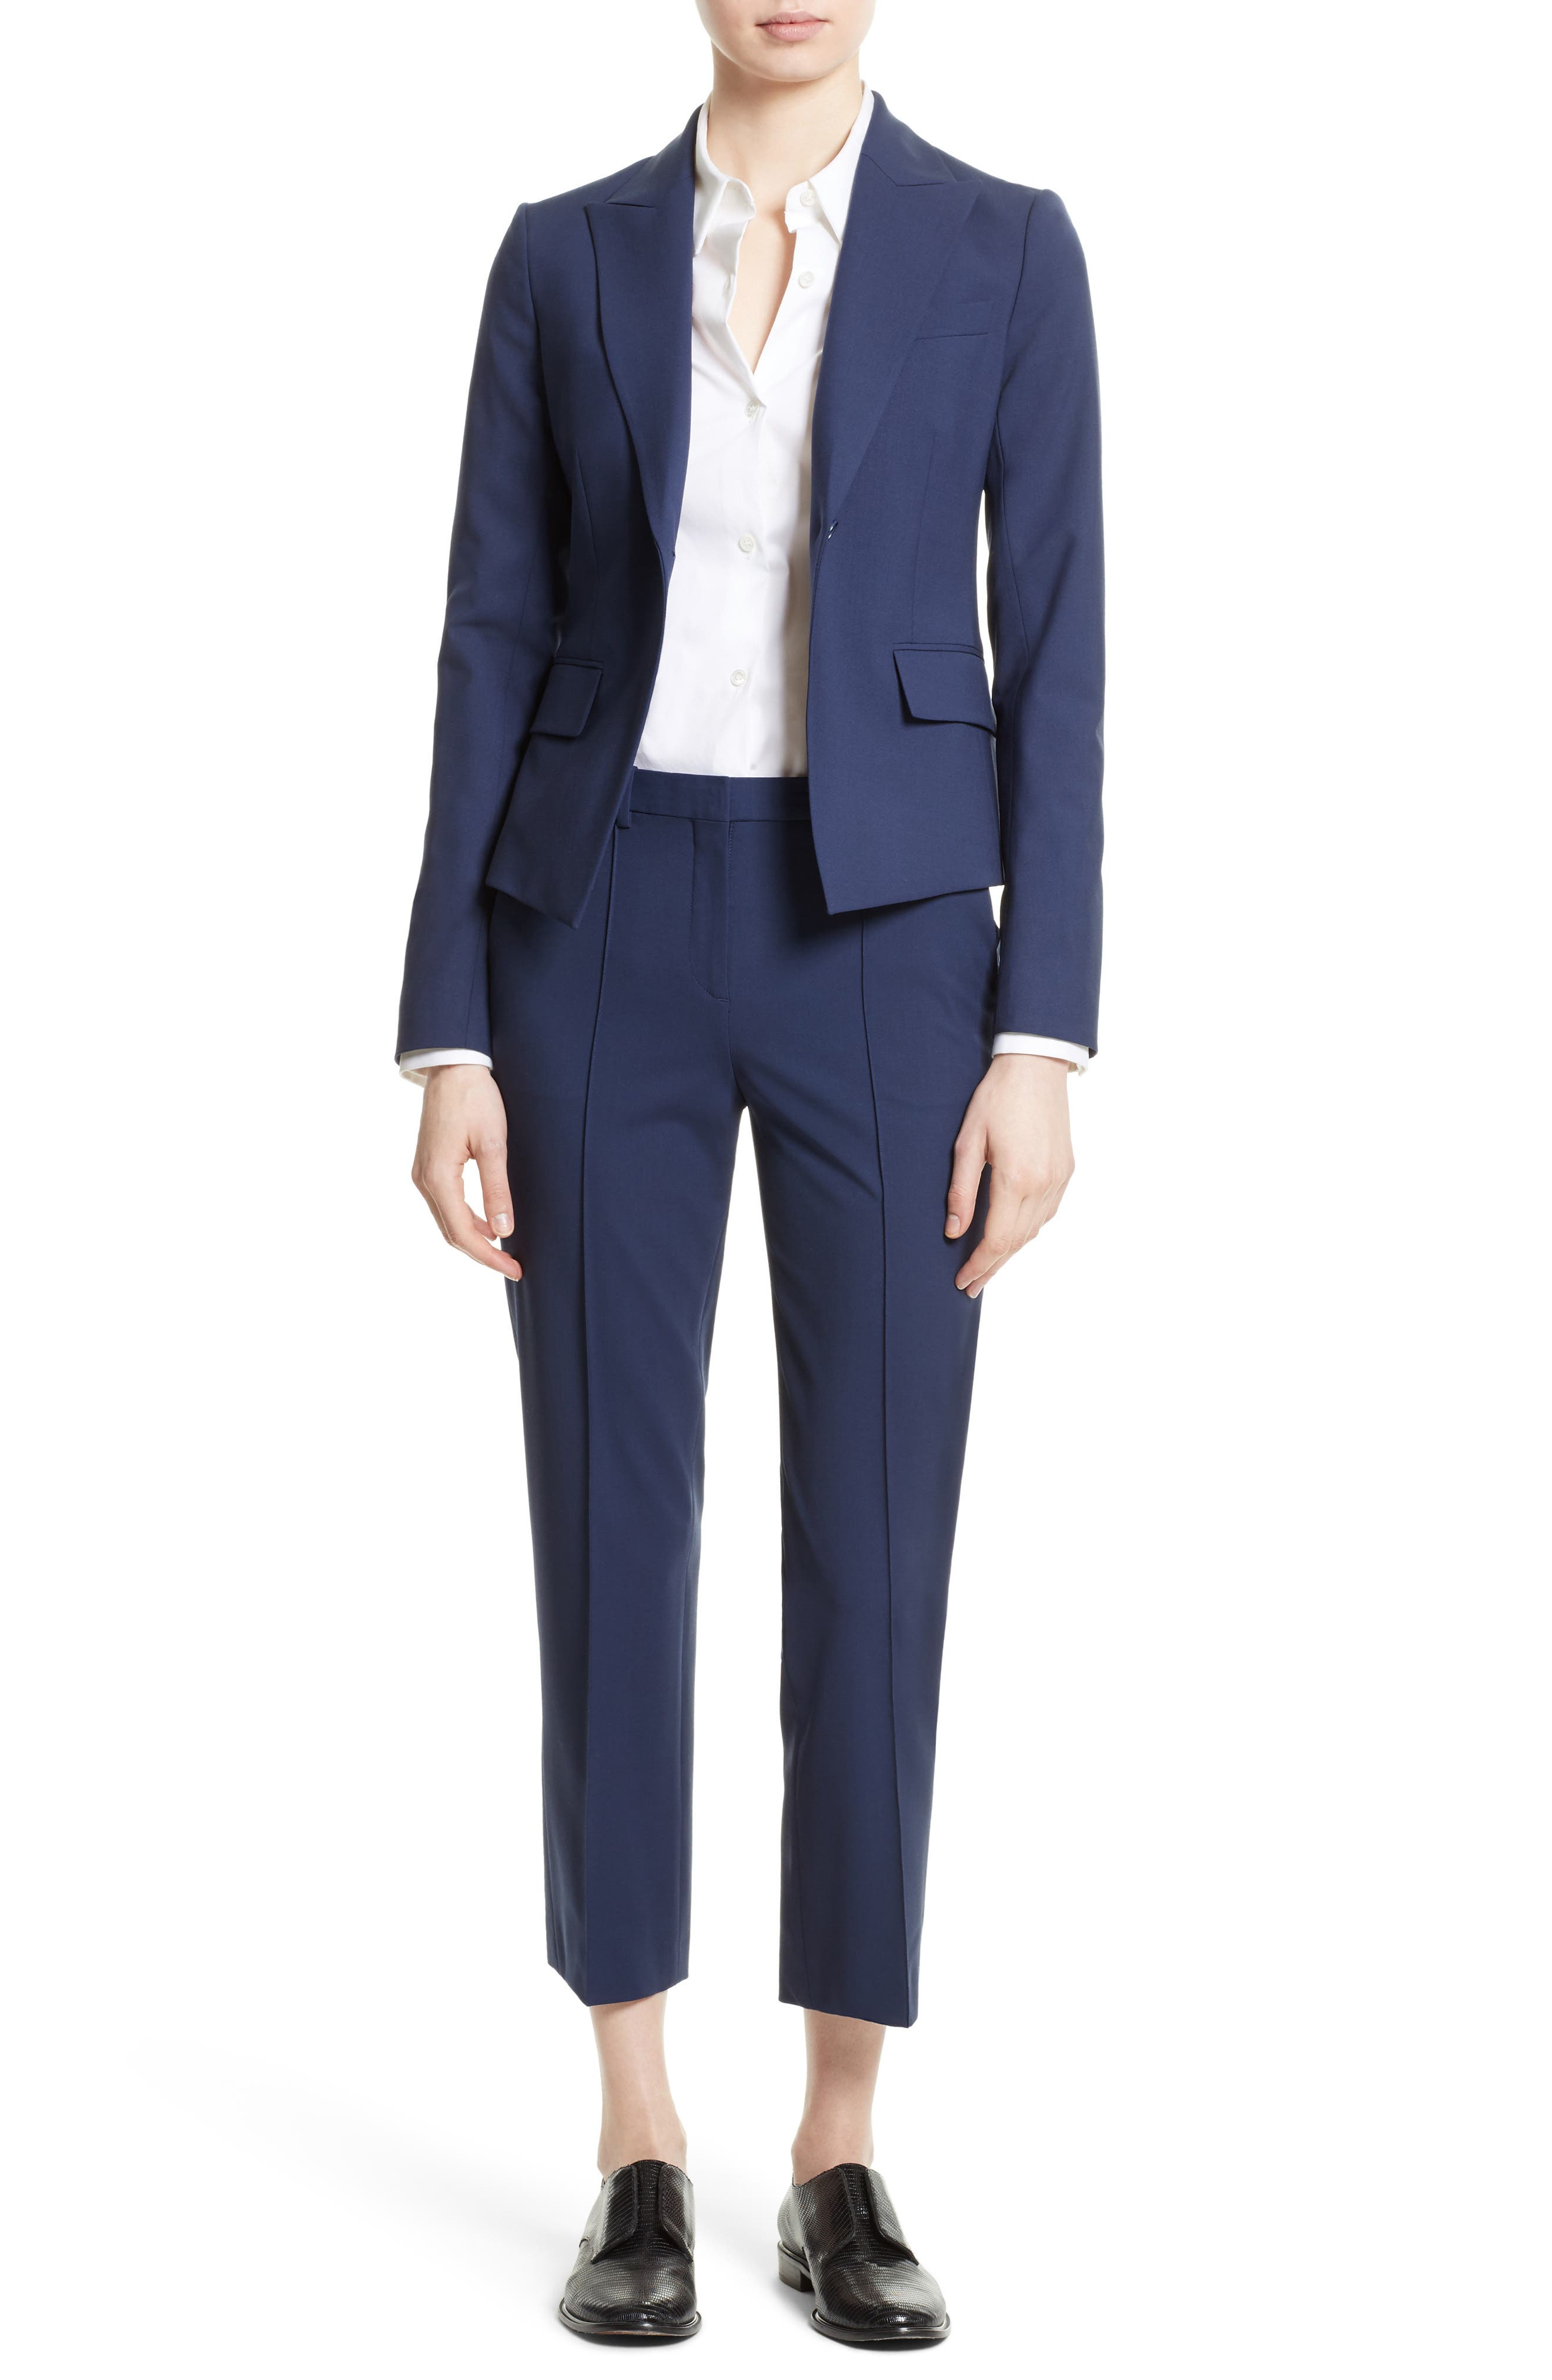 Theory Jacket & Crop Pants Outfit with Accessories